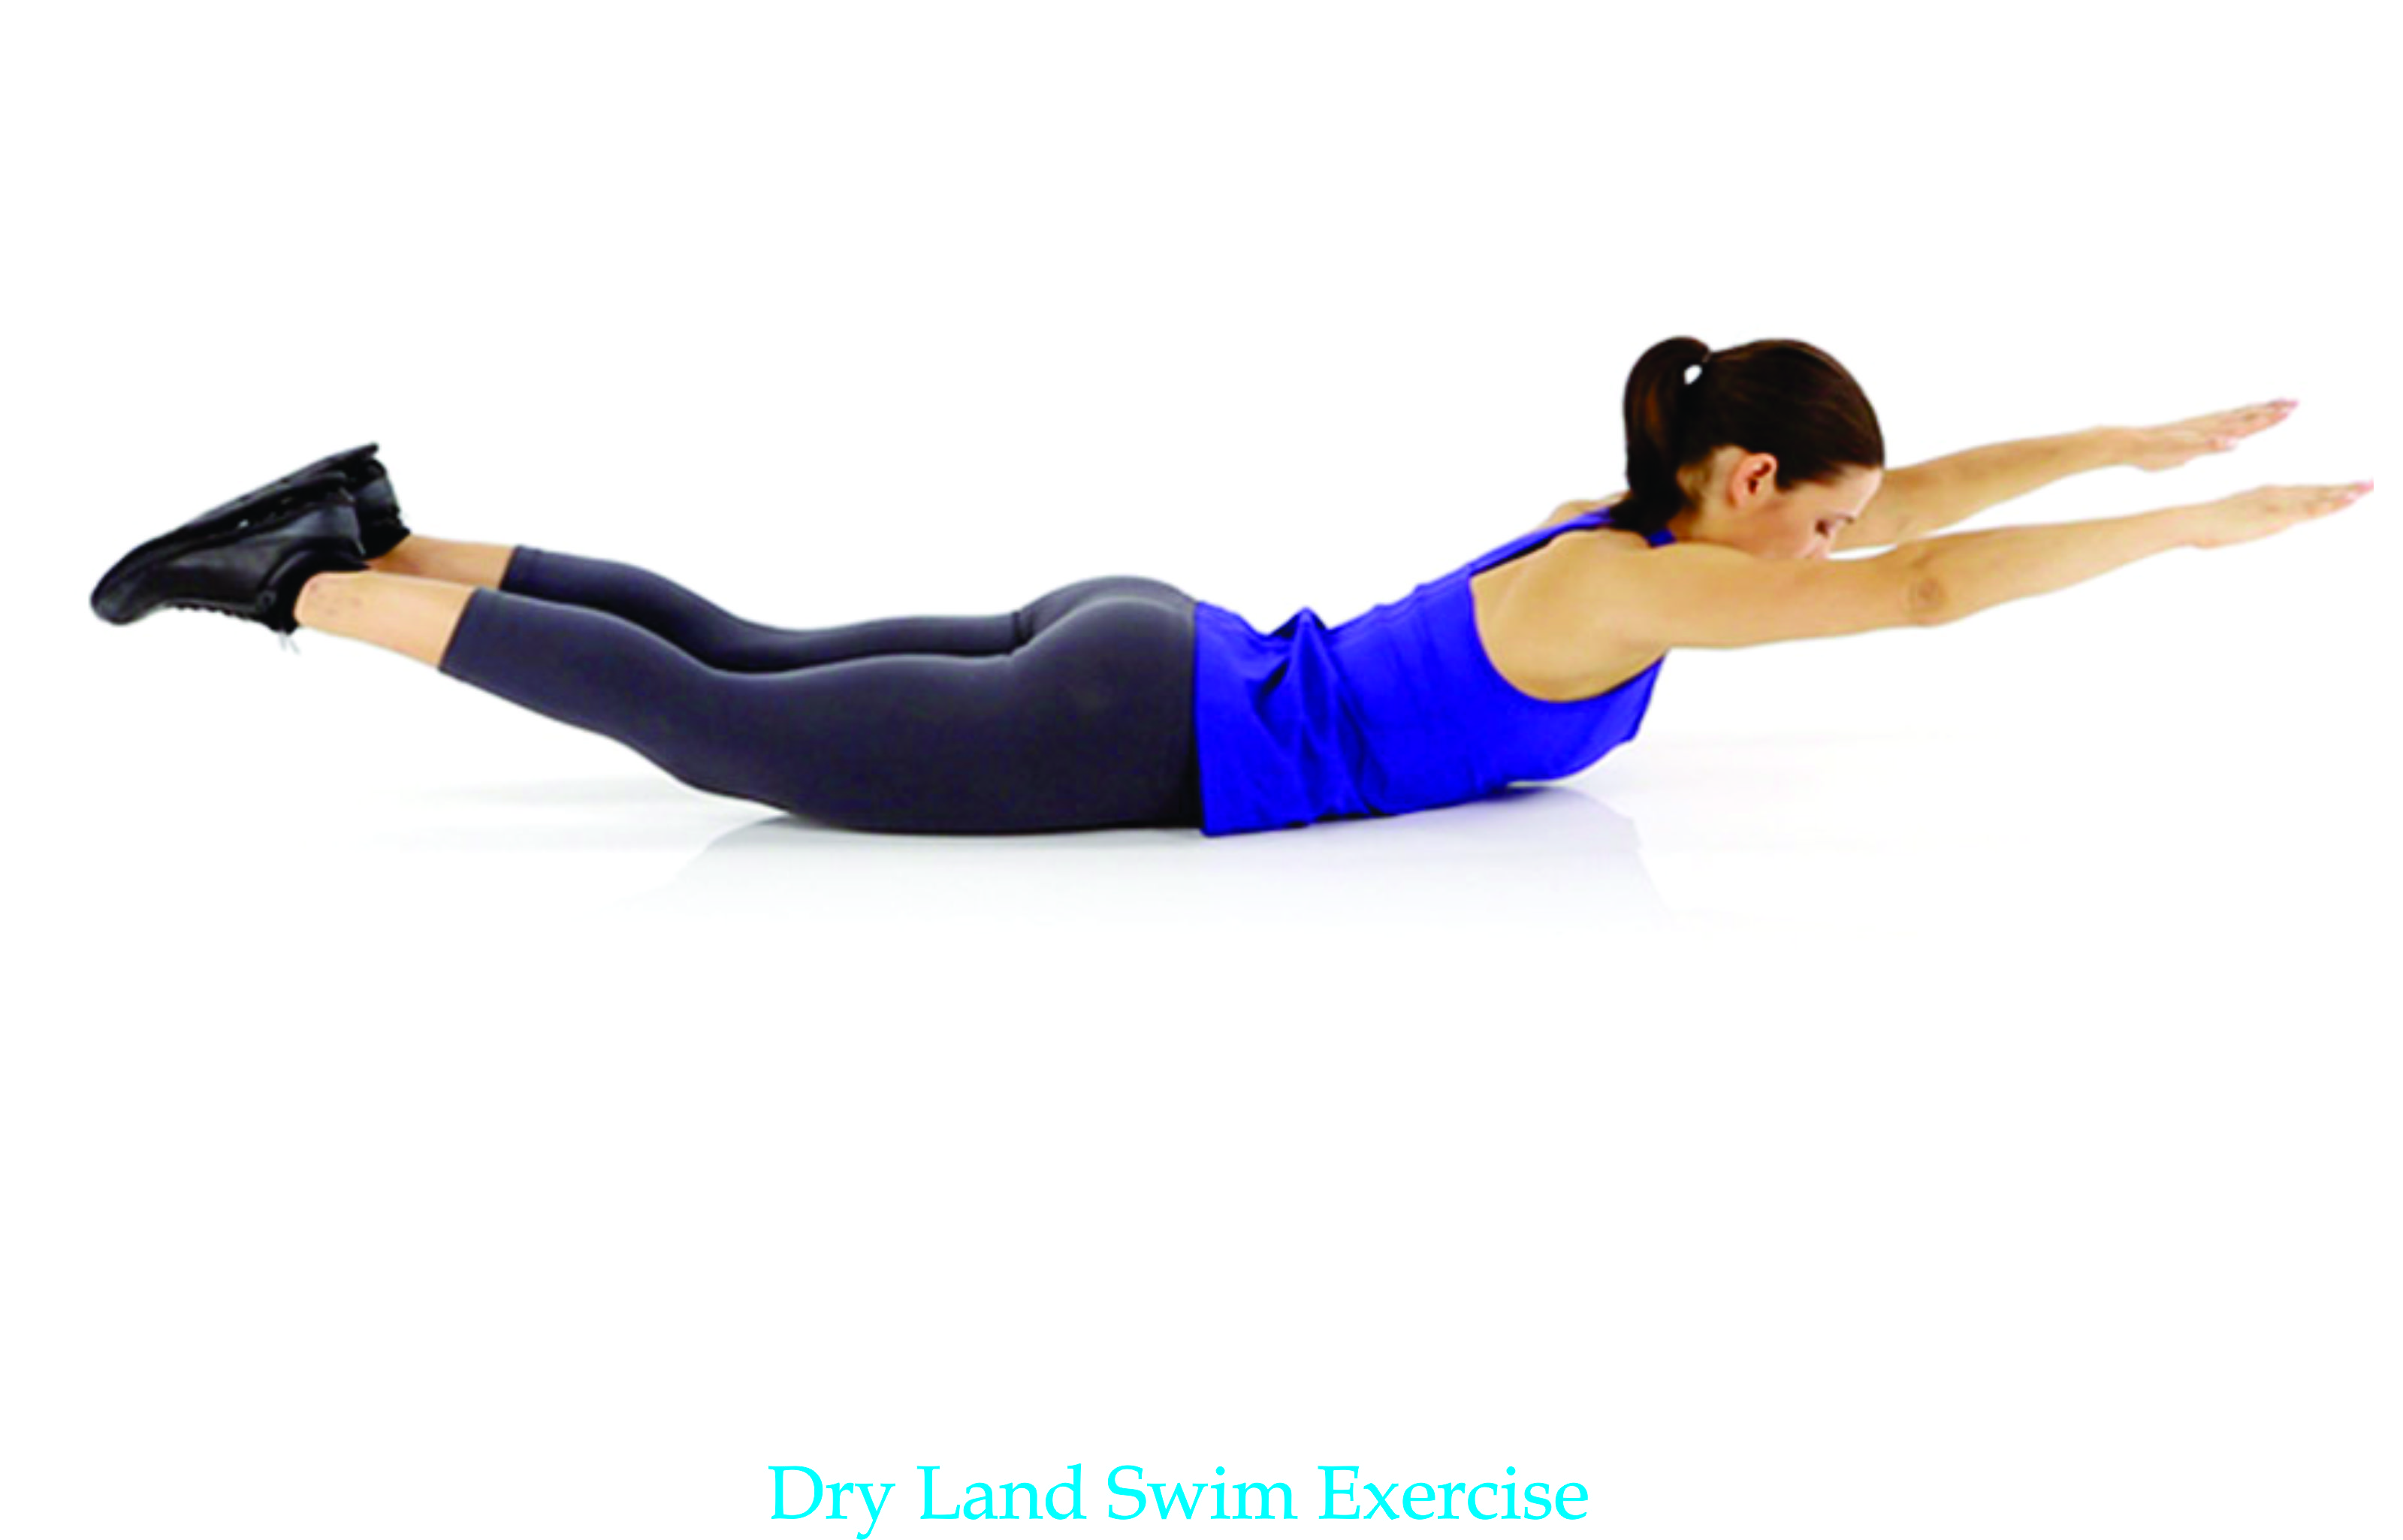 dry land swim exercise